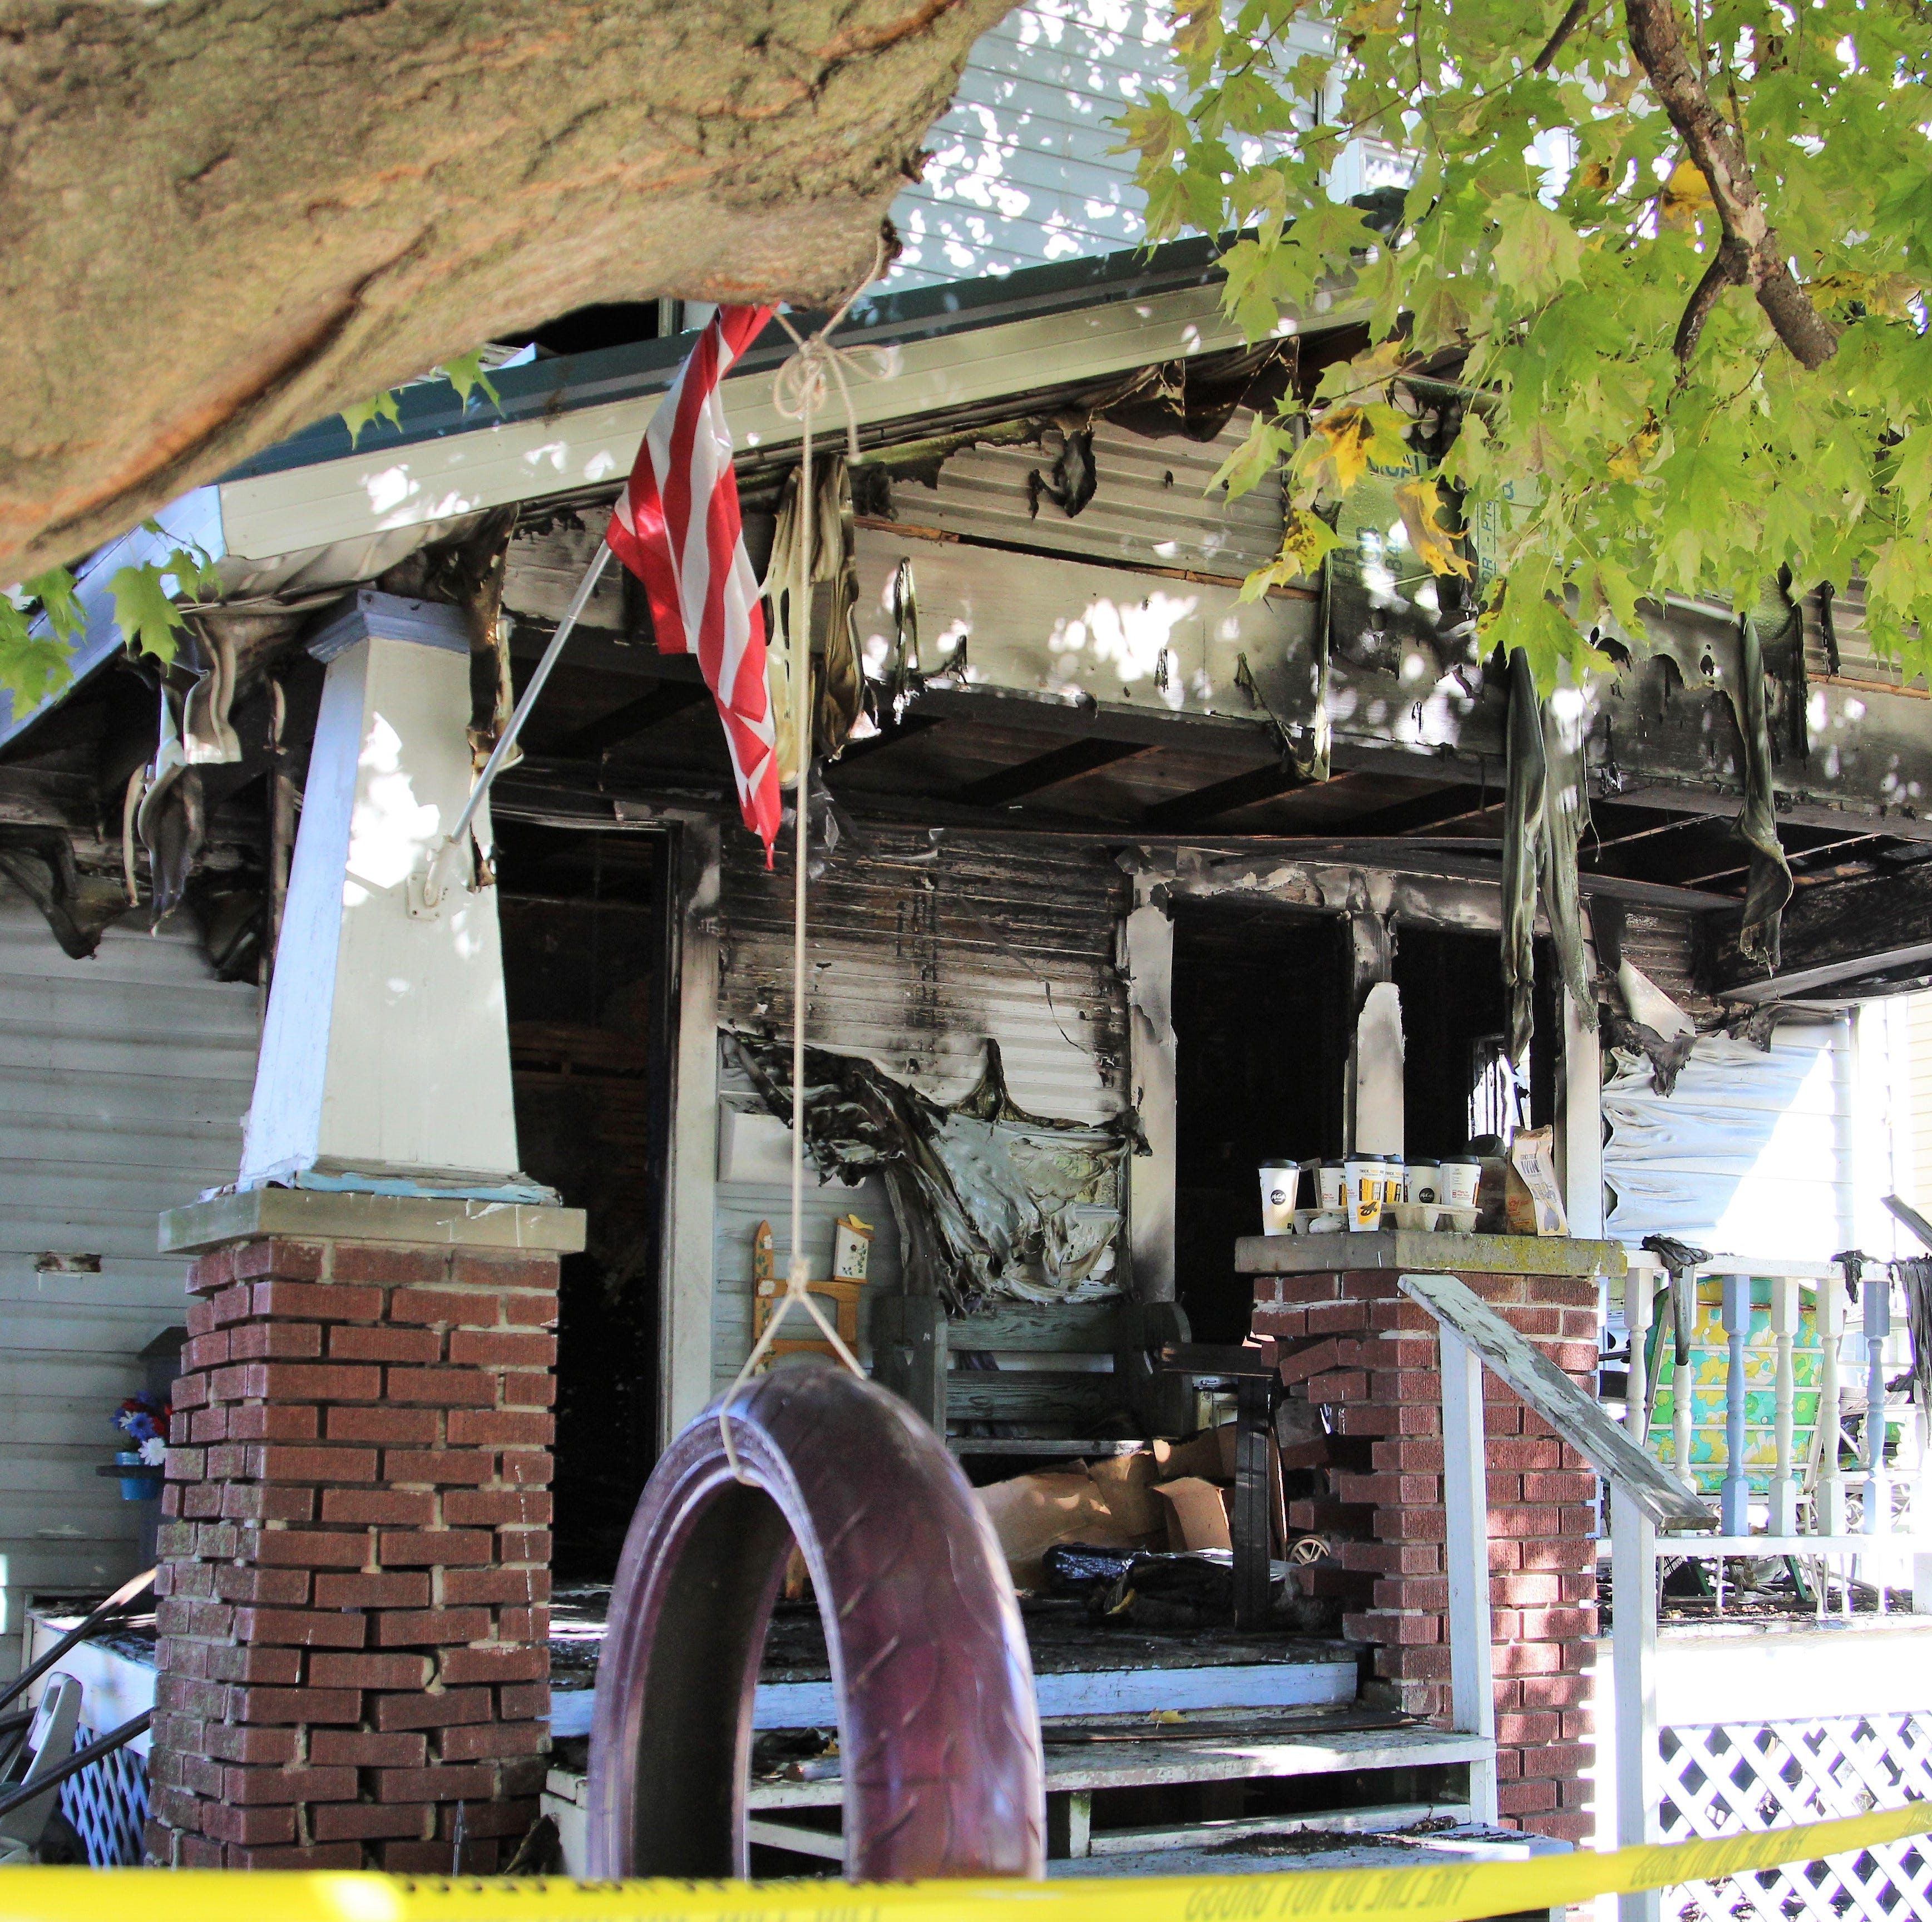 An early morning blaze on East Fairground Street claimed the lives of a 61-year-old woman and a 4-year-old boy.